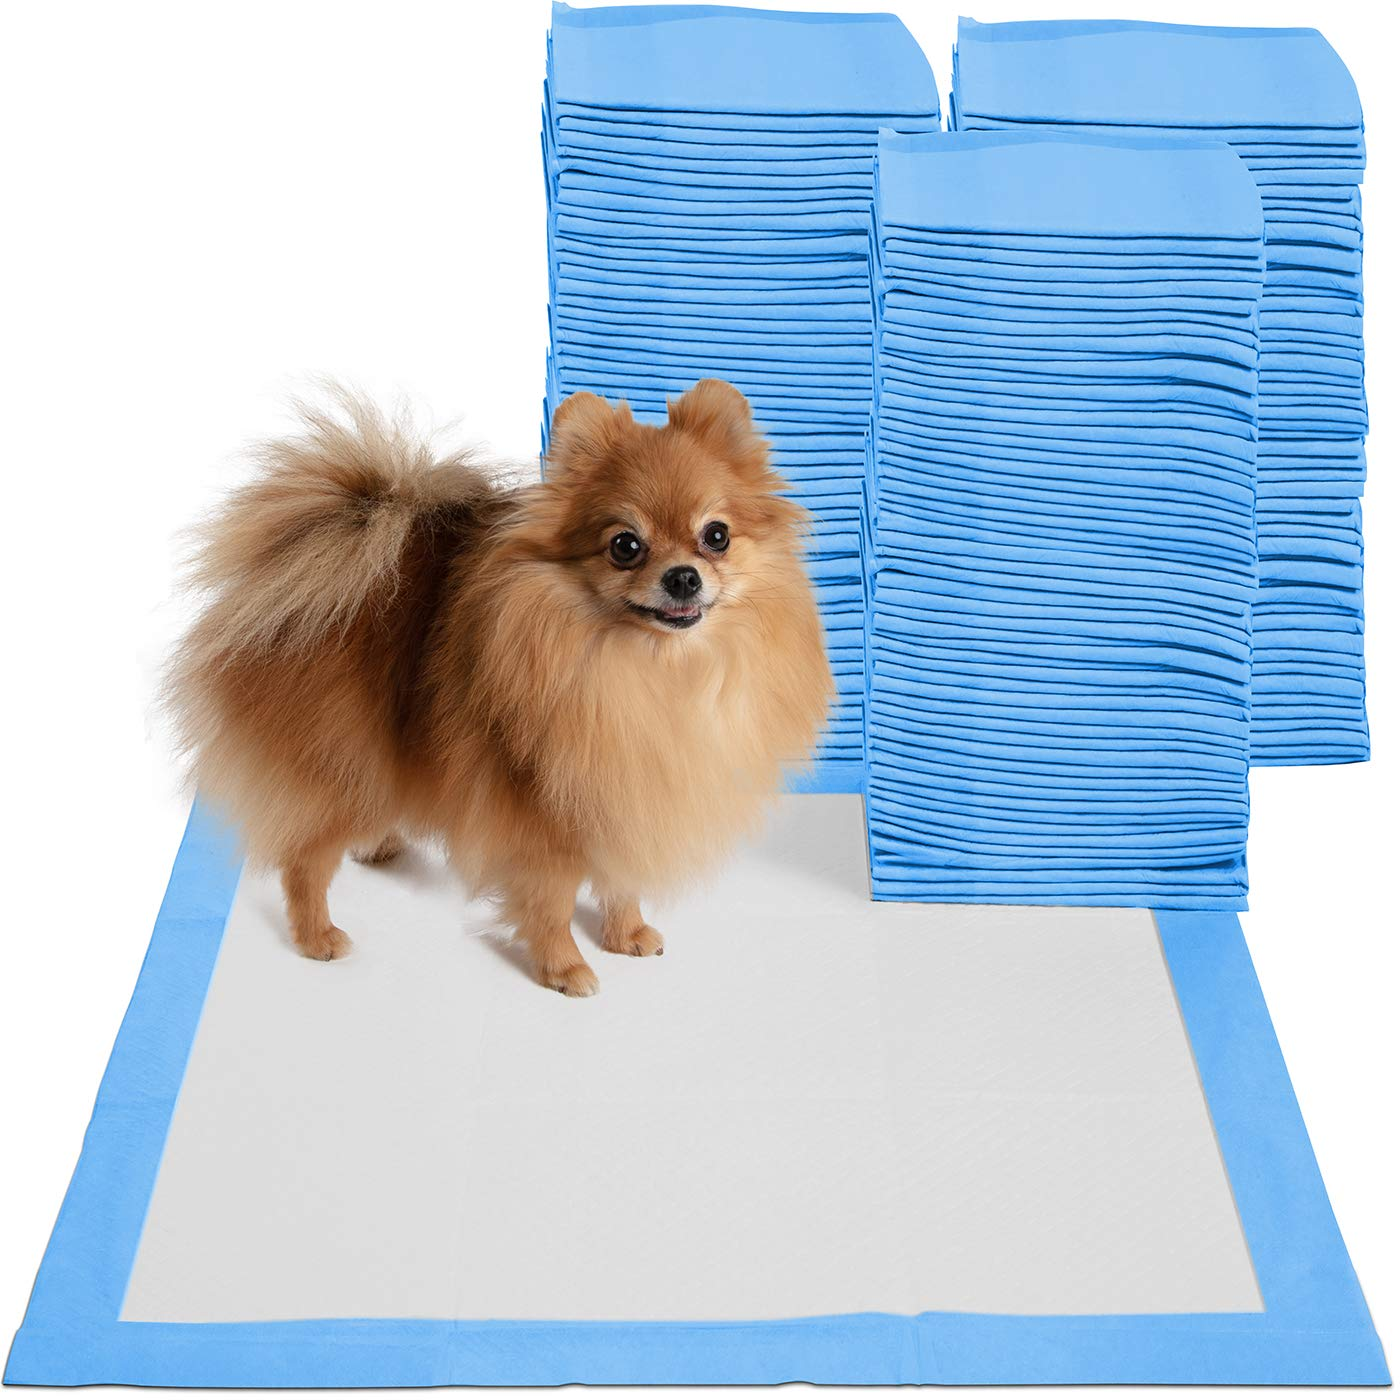 inch Training Potty Pads Count